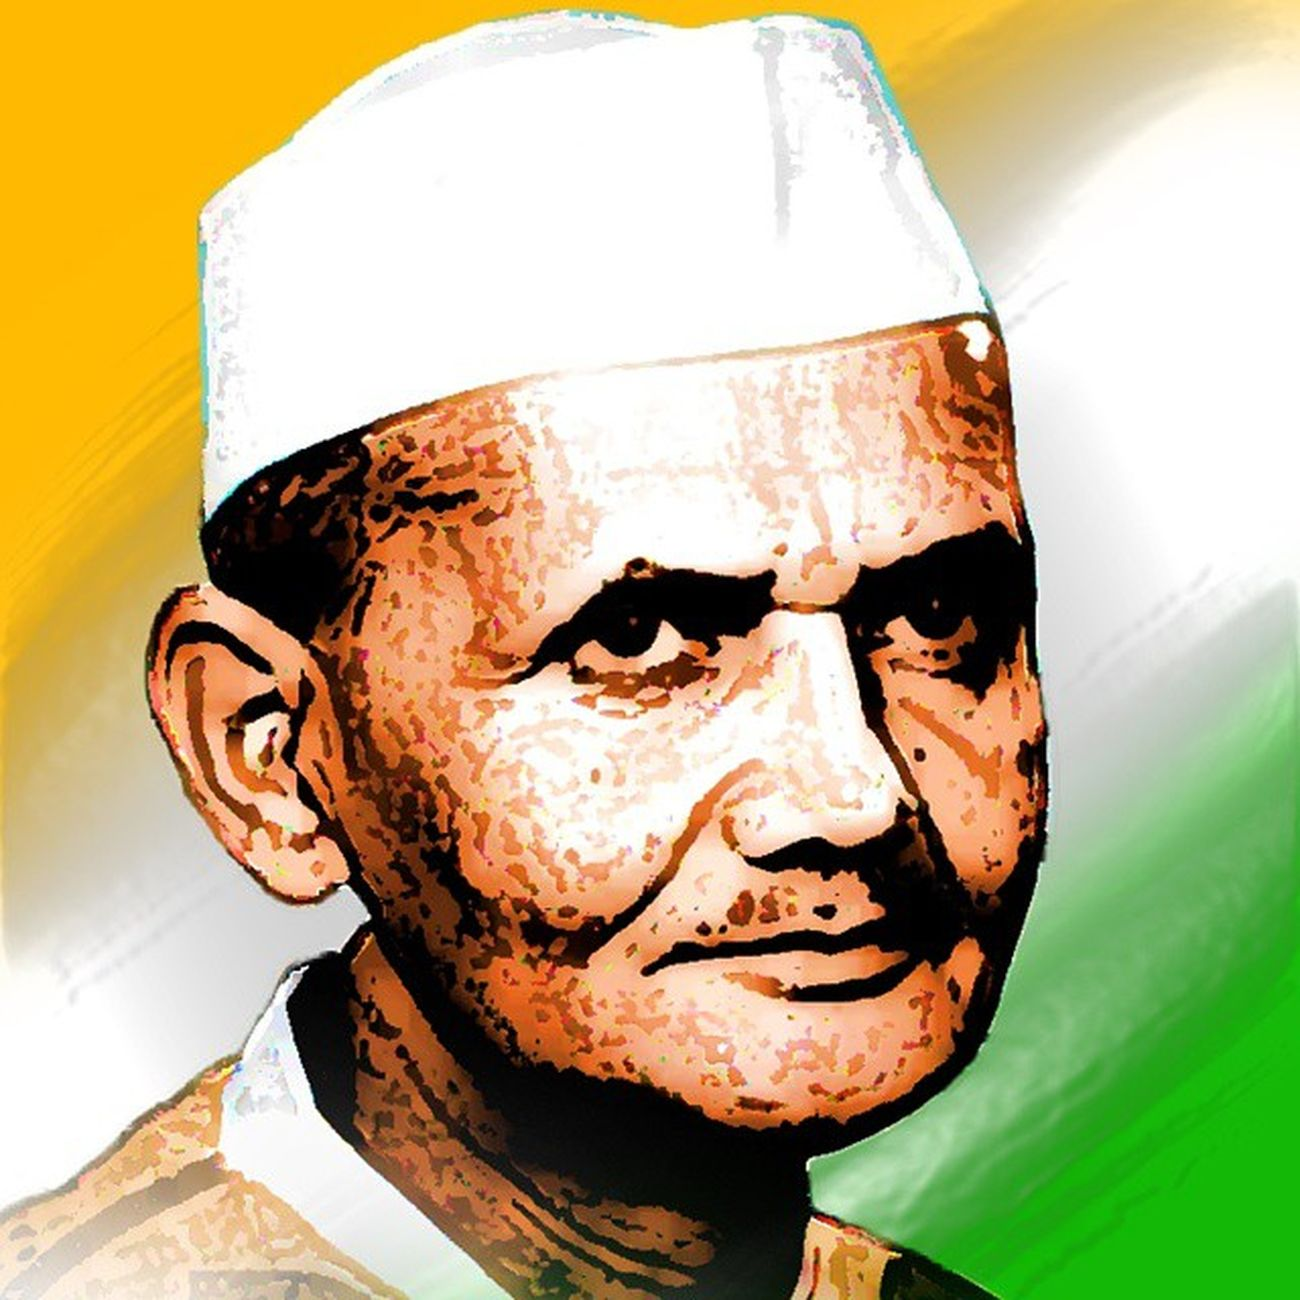 My grand tributes on 48th death anniversary of the great person & former PM Shri LalBahadurShastri . Jai Jawan, Jai Kissan!!